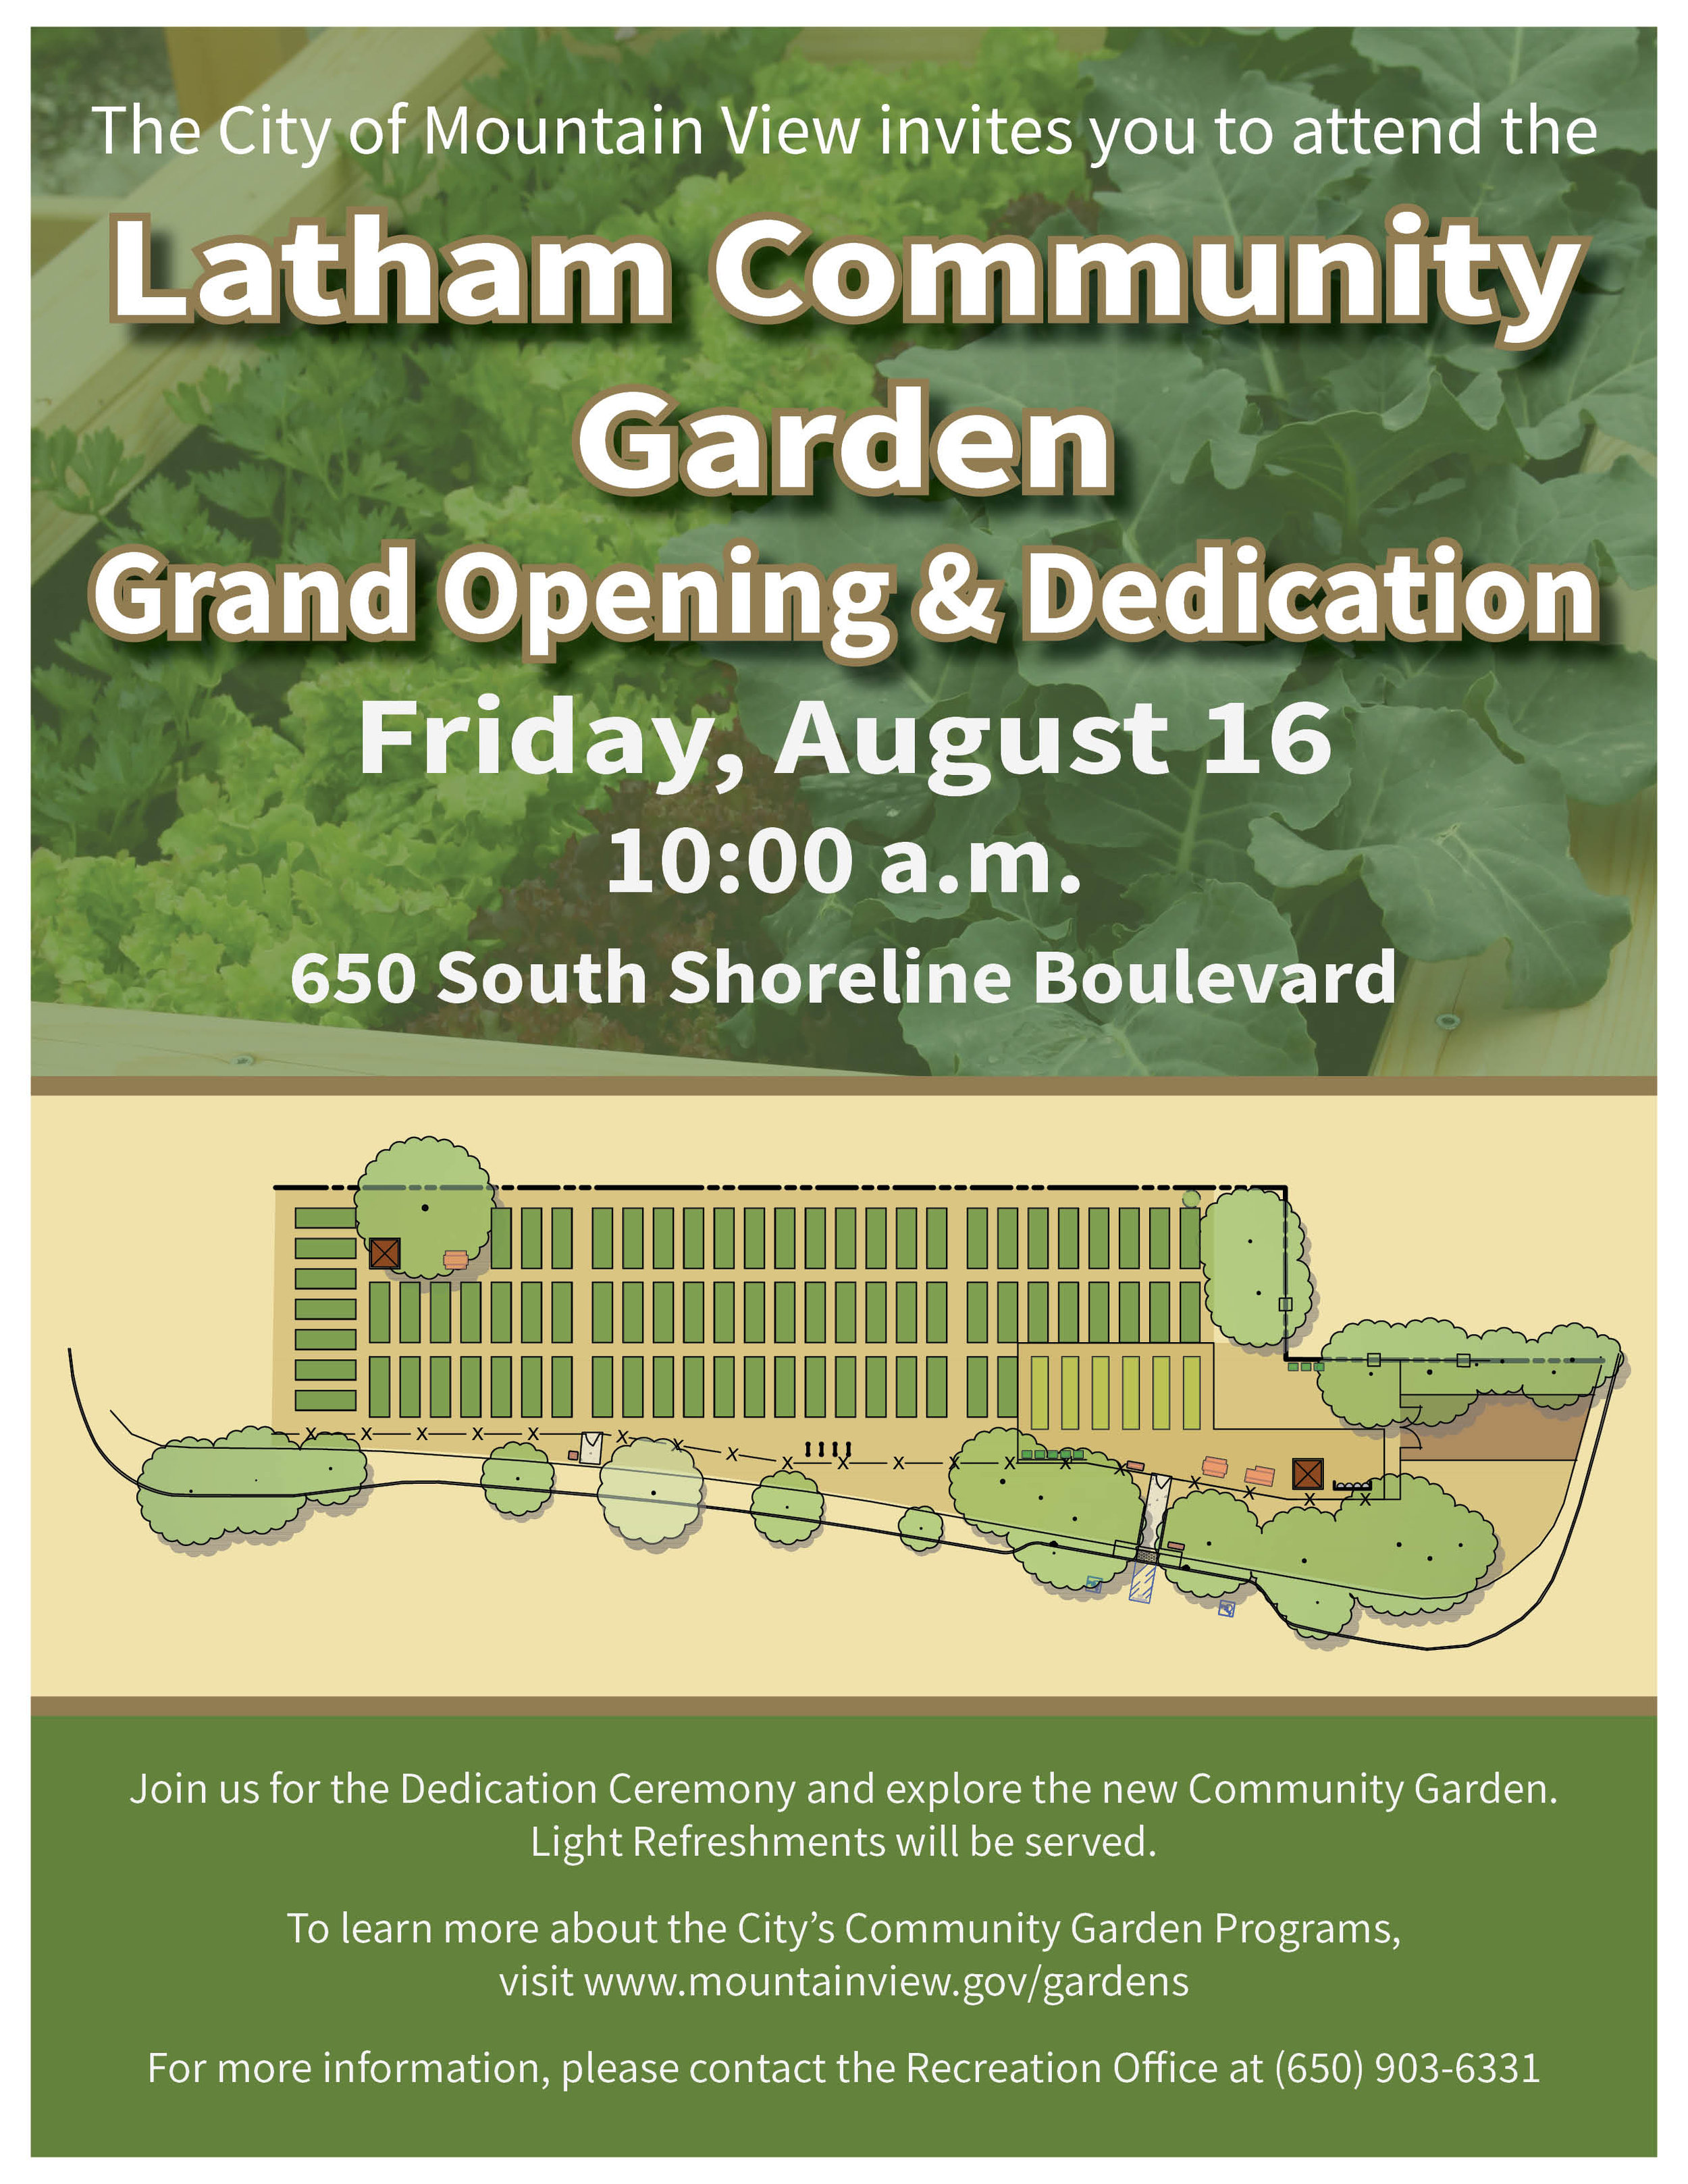 Latham_Community_Garden_Dedication.jpg